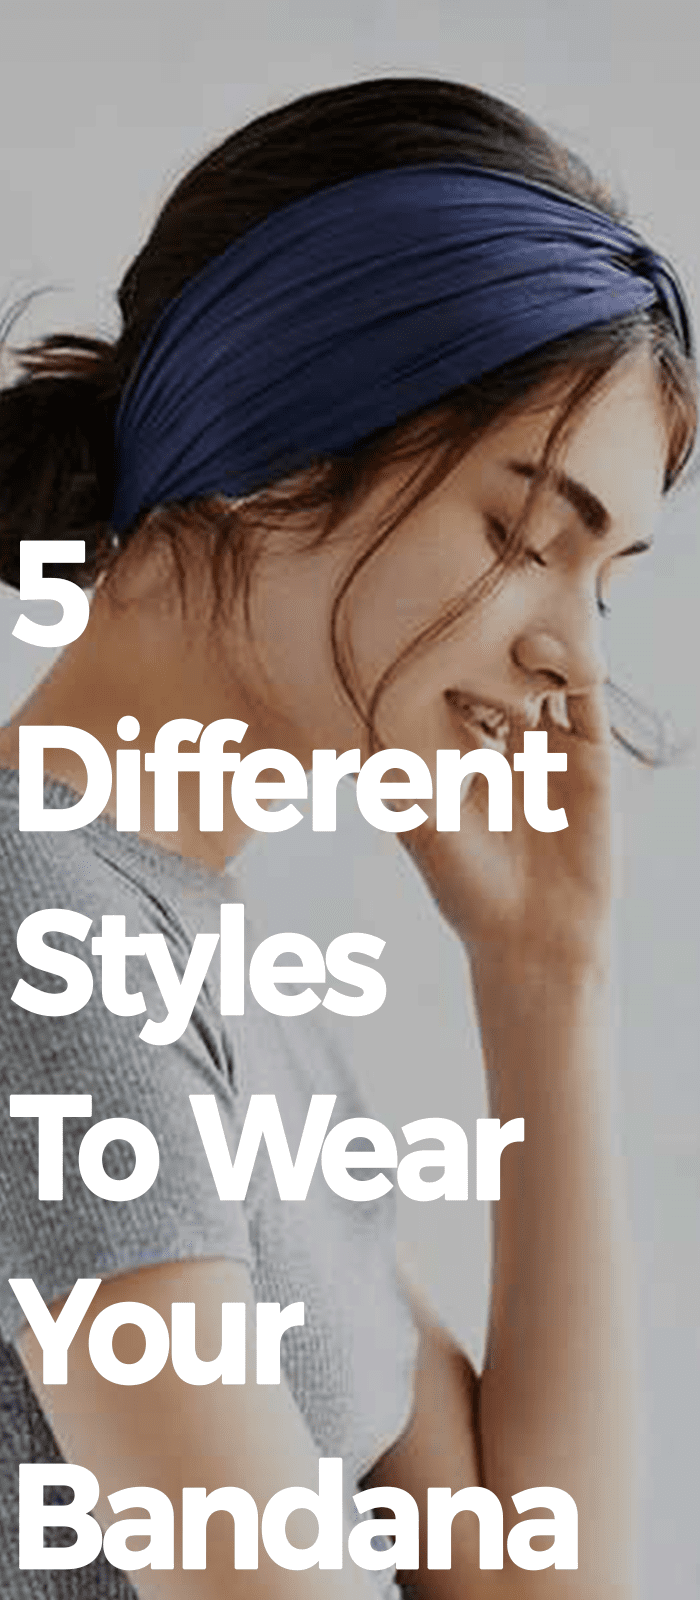 5 Different Styles To Wear Your Bandana!